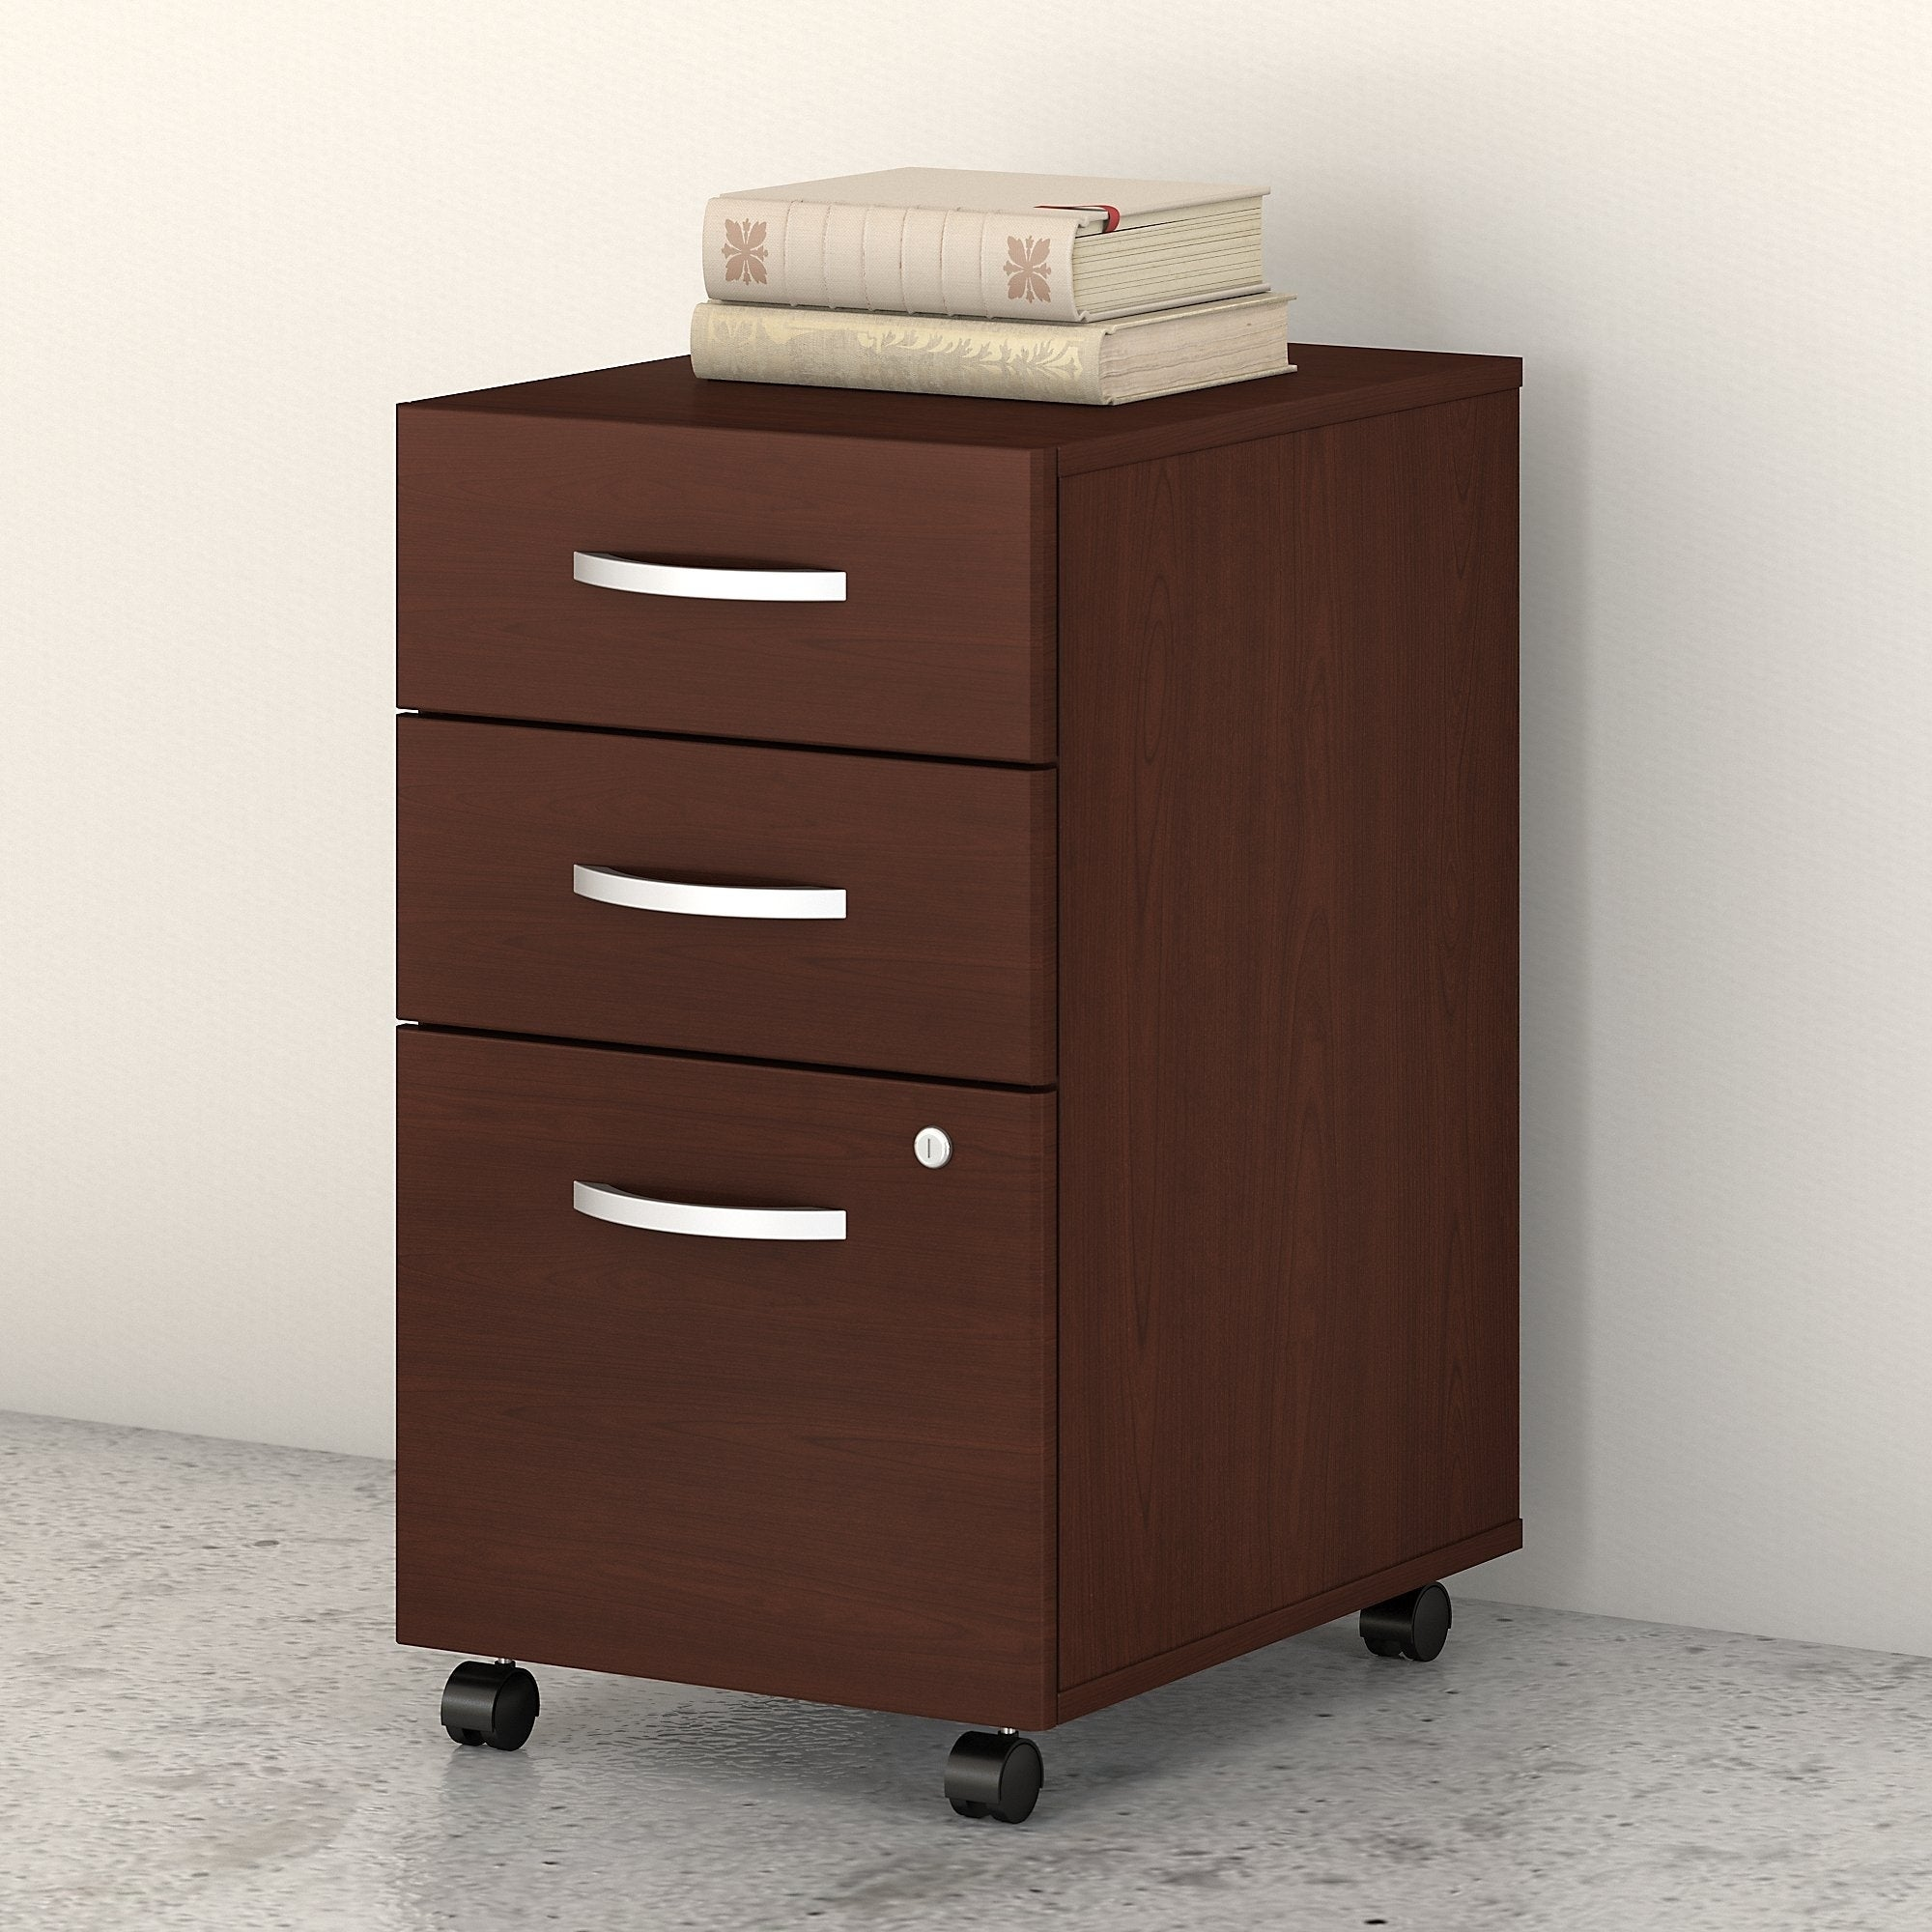 Studio C 35 Drawer Mobile File Cabinet by Bush Business Furniture